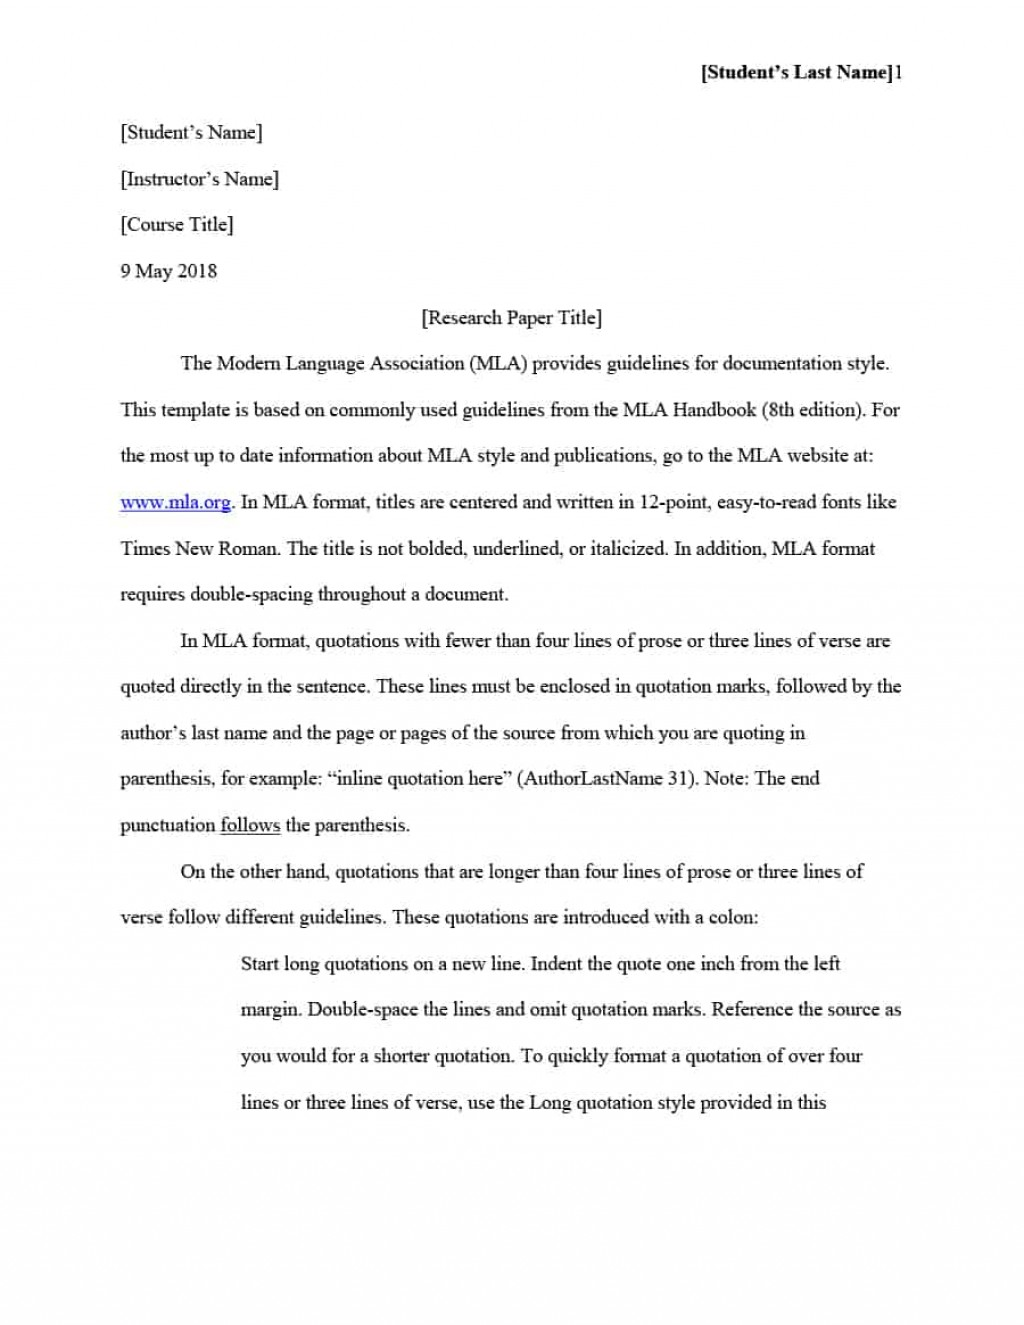 002 Mla Format Template Research Paper Papers Astounding Style Sample Outline Guide To Writing In Example Large